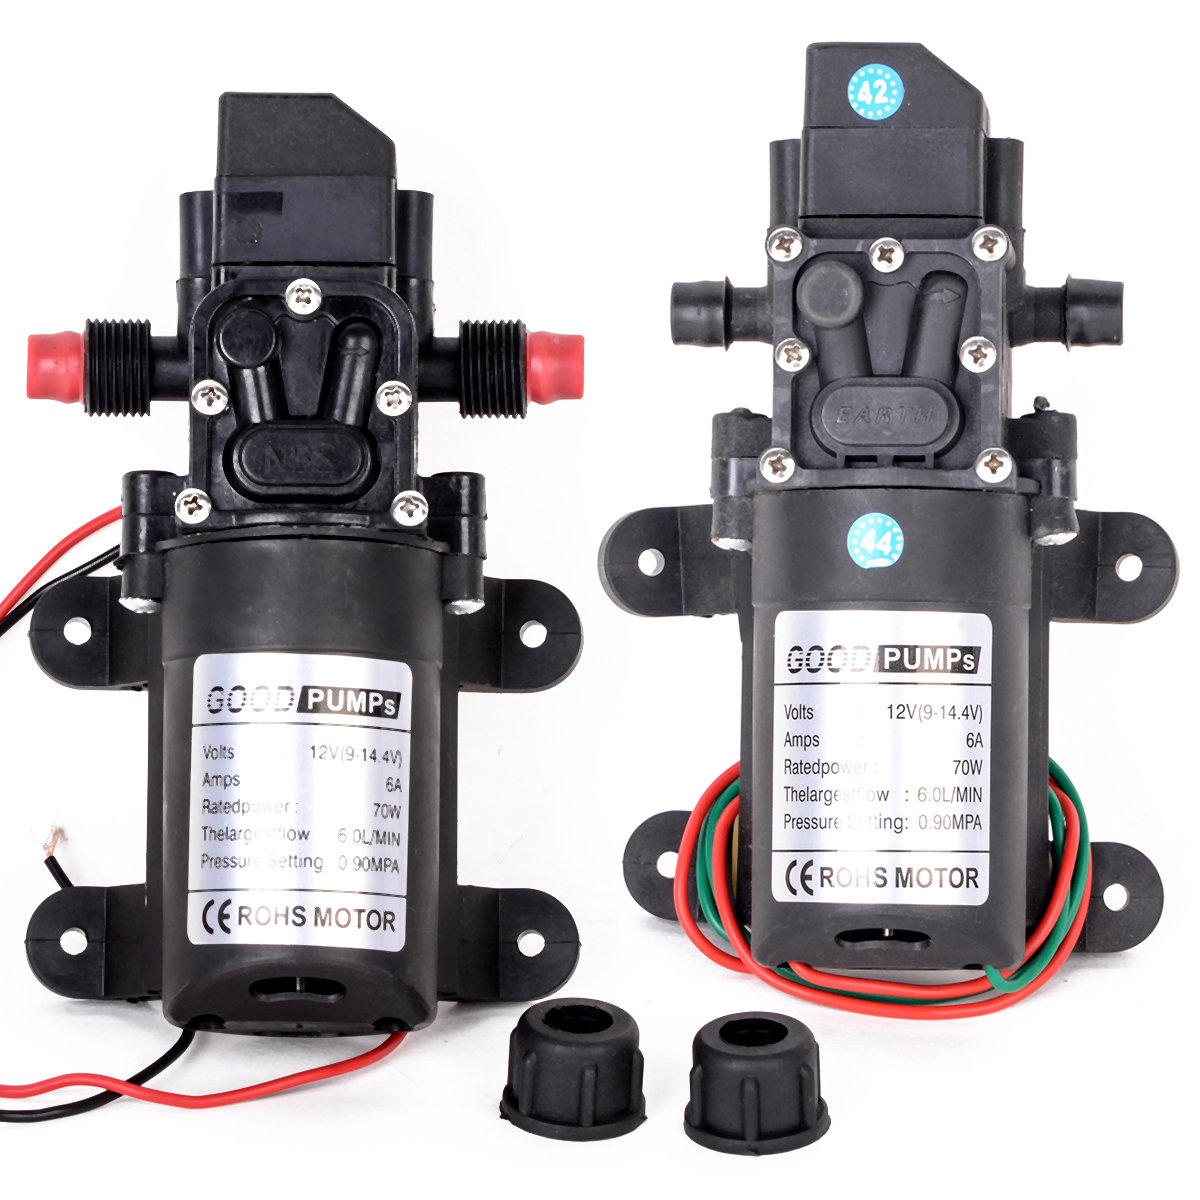 New Mini Diaphragm Water Pump DC12V 70W 130PSI 6L/Min Water High Pressure Diaphragm Self Priming Pump For Electric Car Washing new water pump for 4jb1 sh60 hd307 sk60 8 94310 251 0